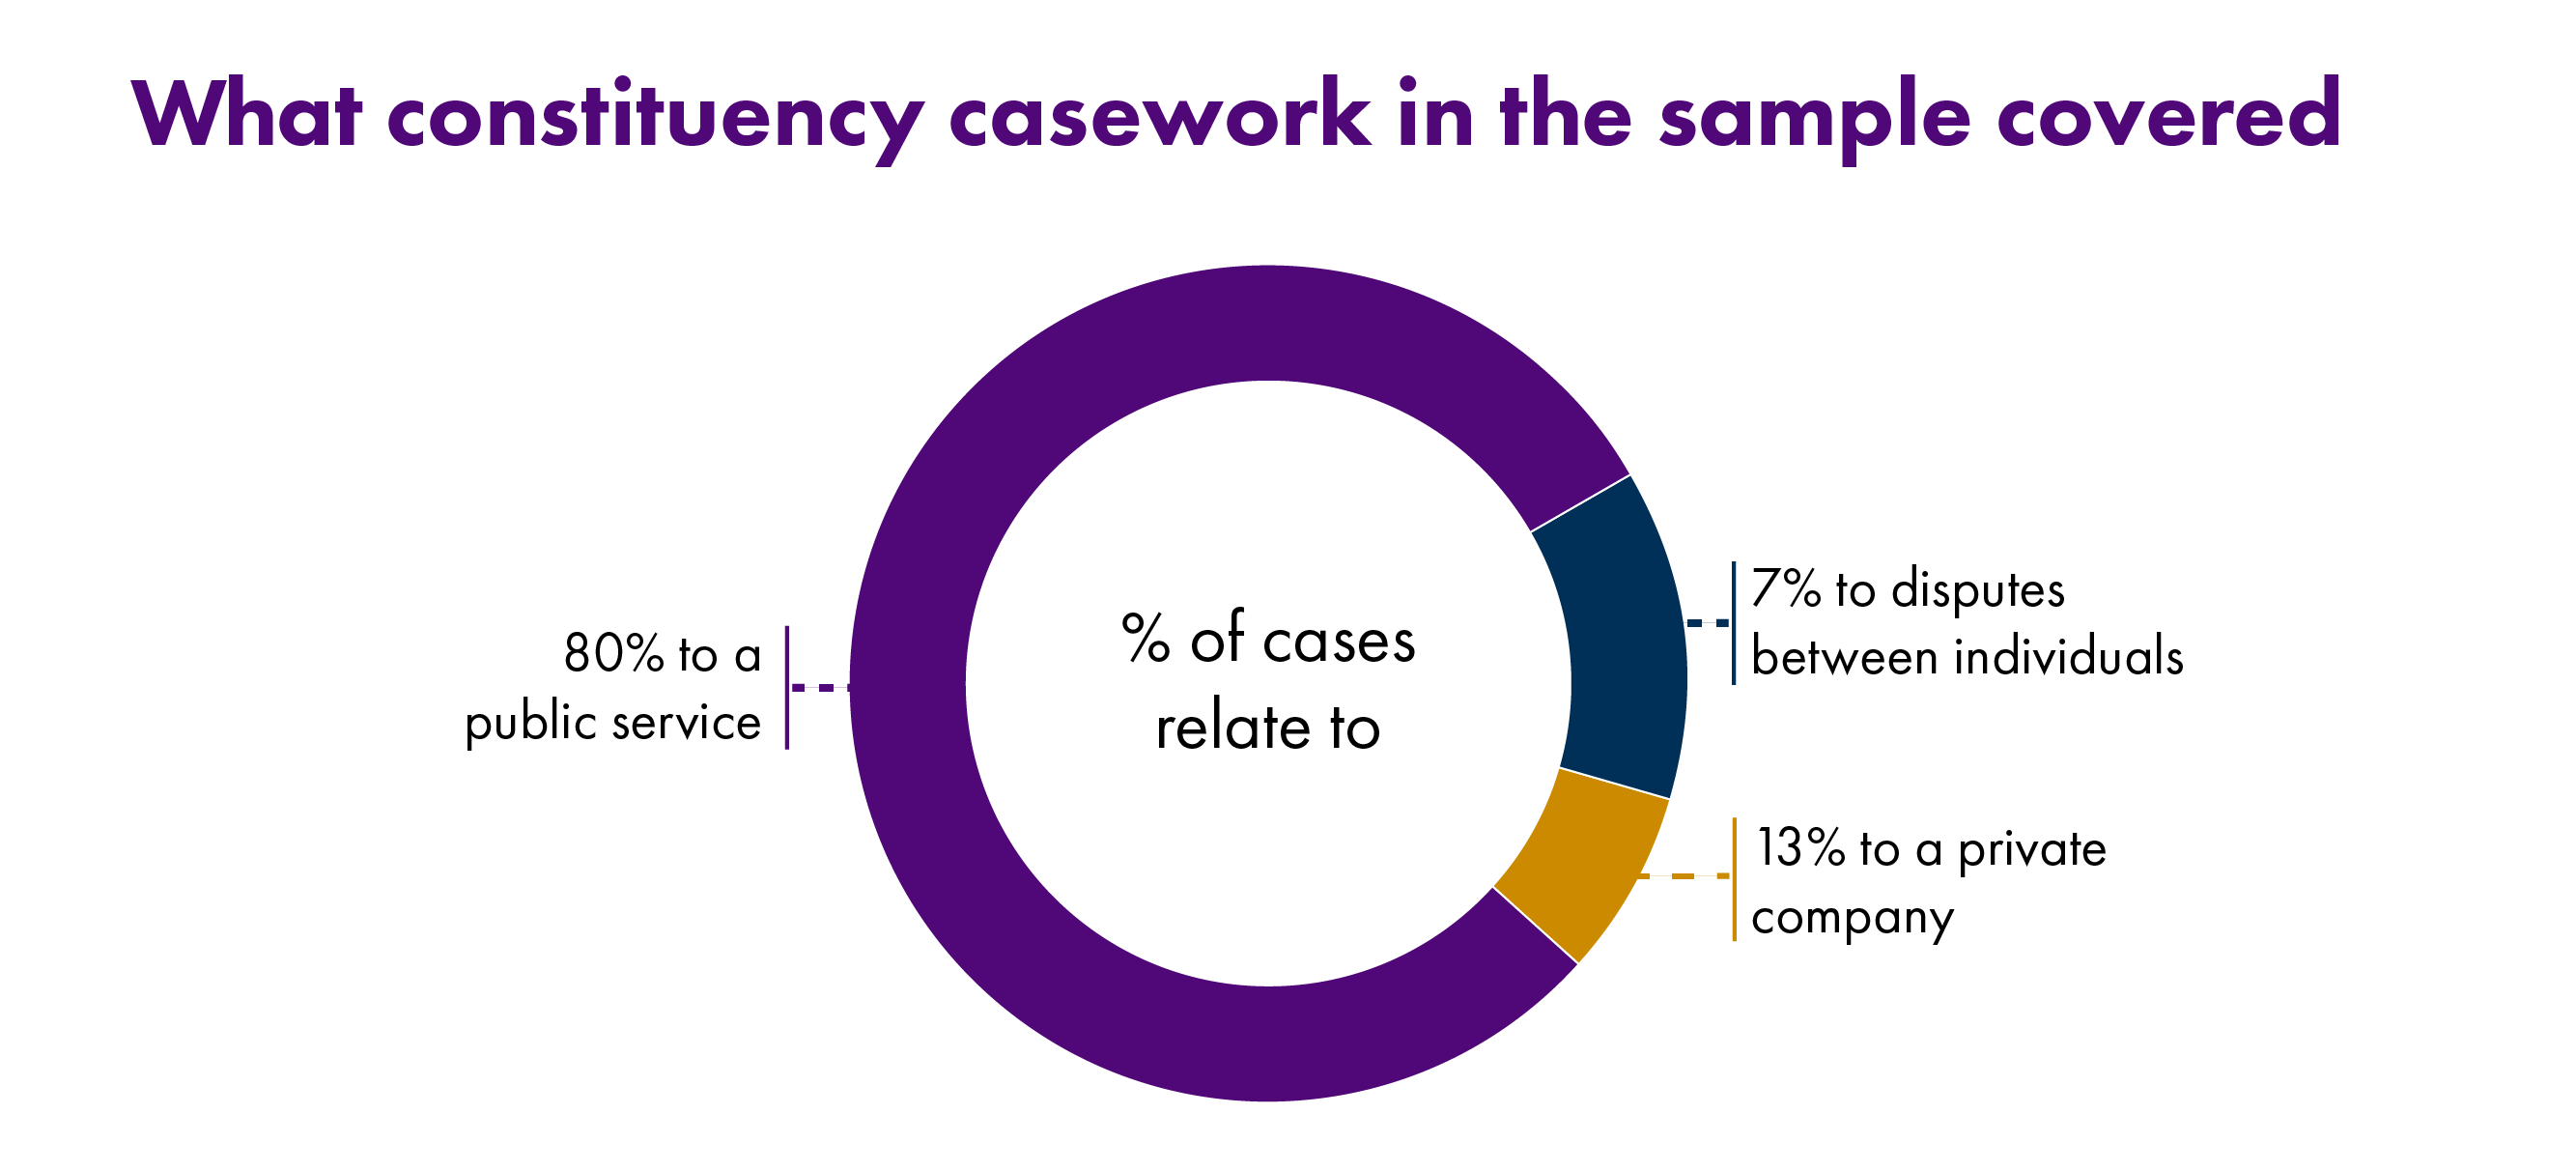 Infographic showing the origins of casework cases, with 80% relating to a public service, 13% to a private company and 7% to disputes between individuals.